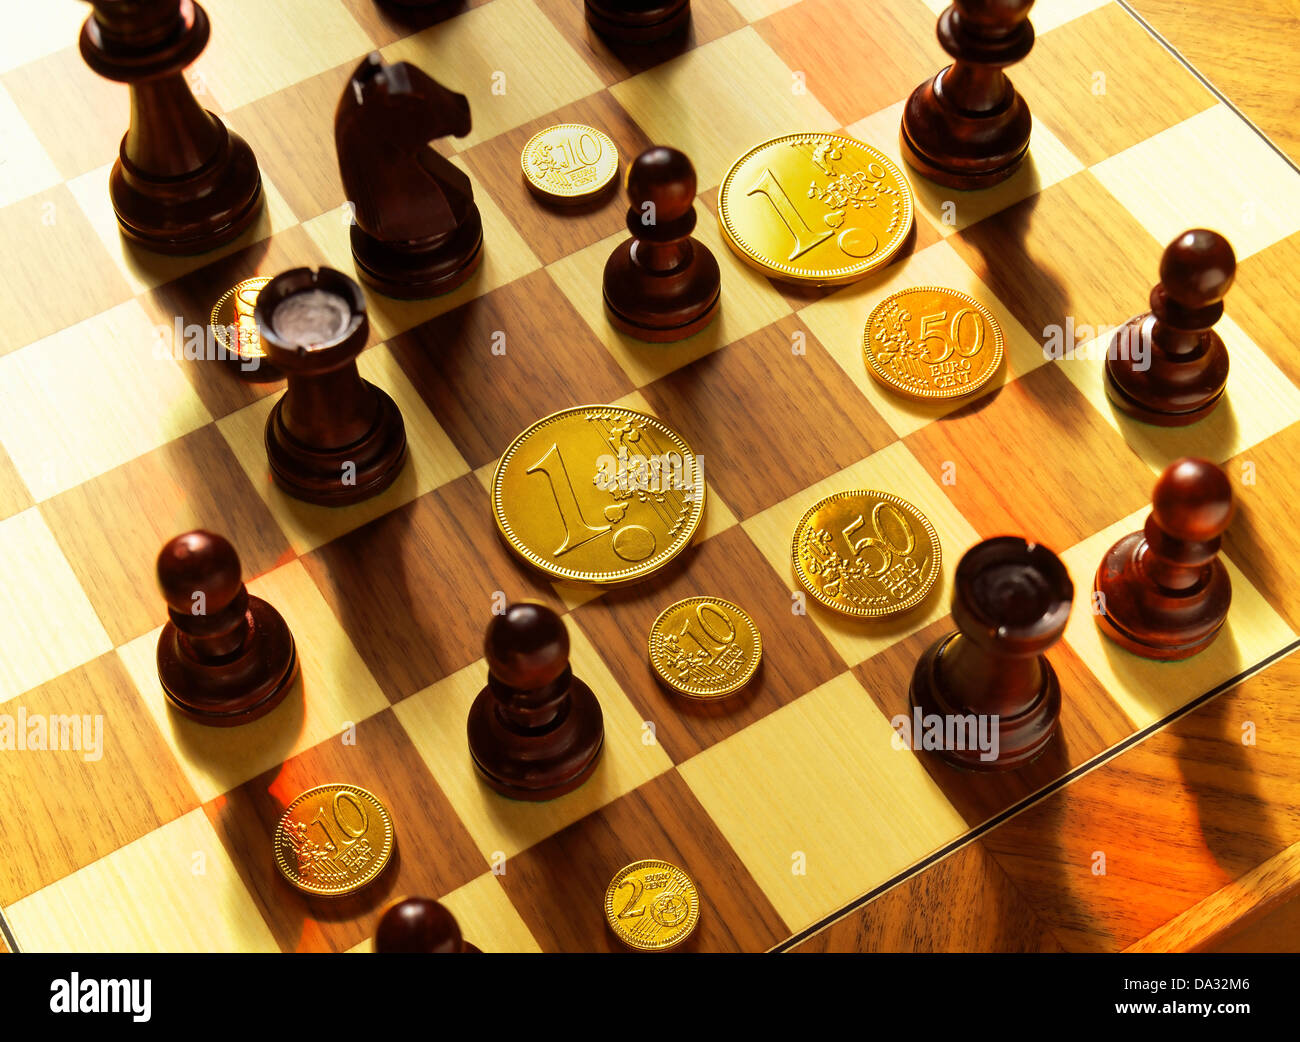 Chessmen And Golden Euro Coins On Chessboard Stock Photo 57845654